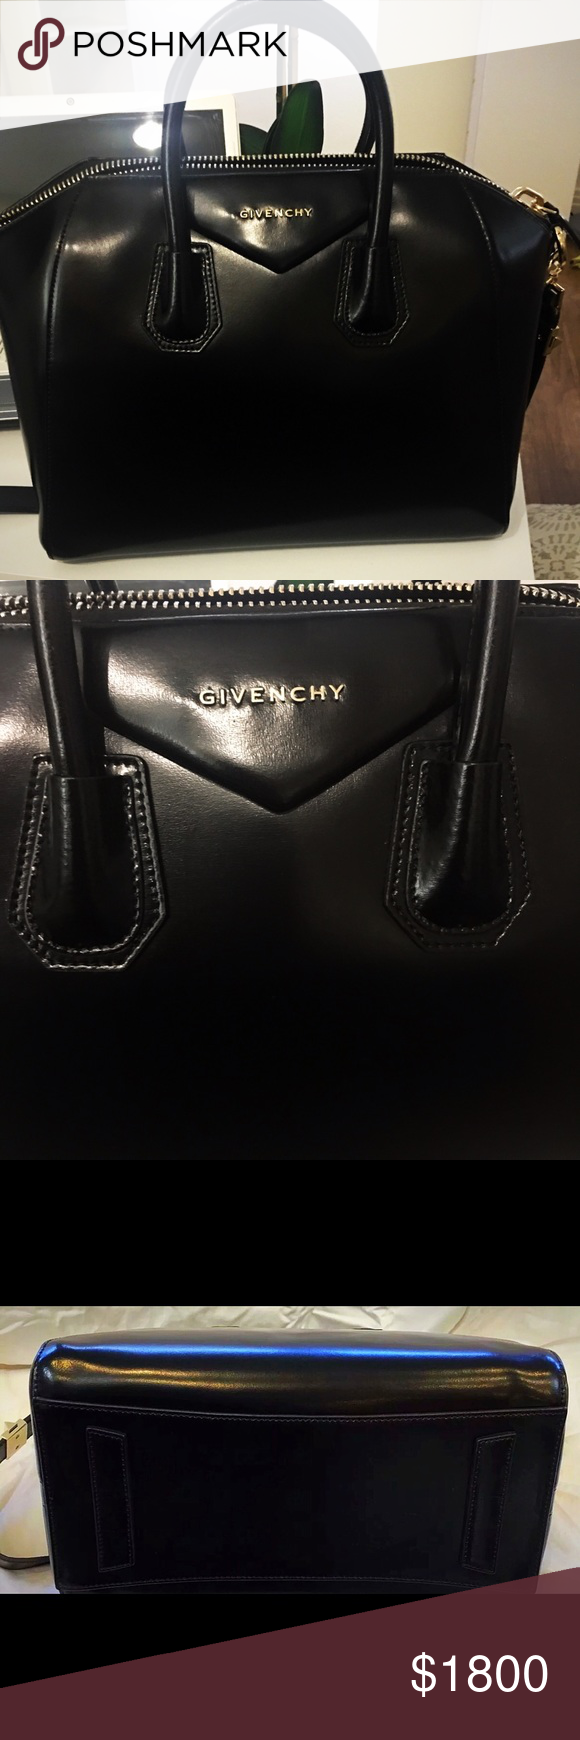 NWT Givenchy Antigona Medium Satchel Comes with receipt, tags and dust bag. Gorgeous and 100% brand new. Authenticity guaranteed Givenchy Bags Satchels